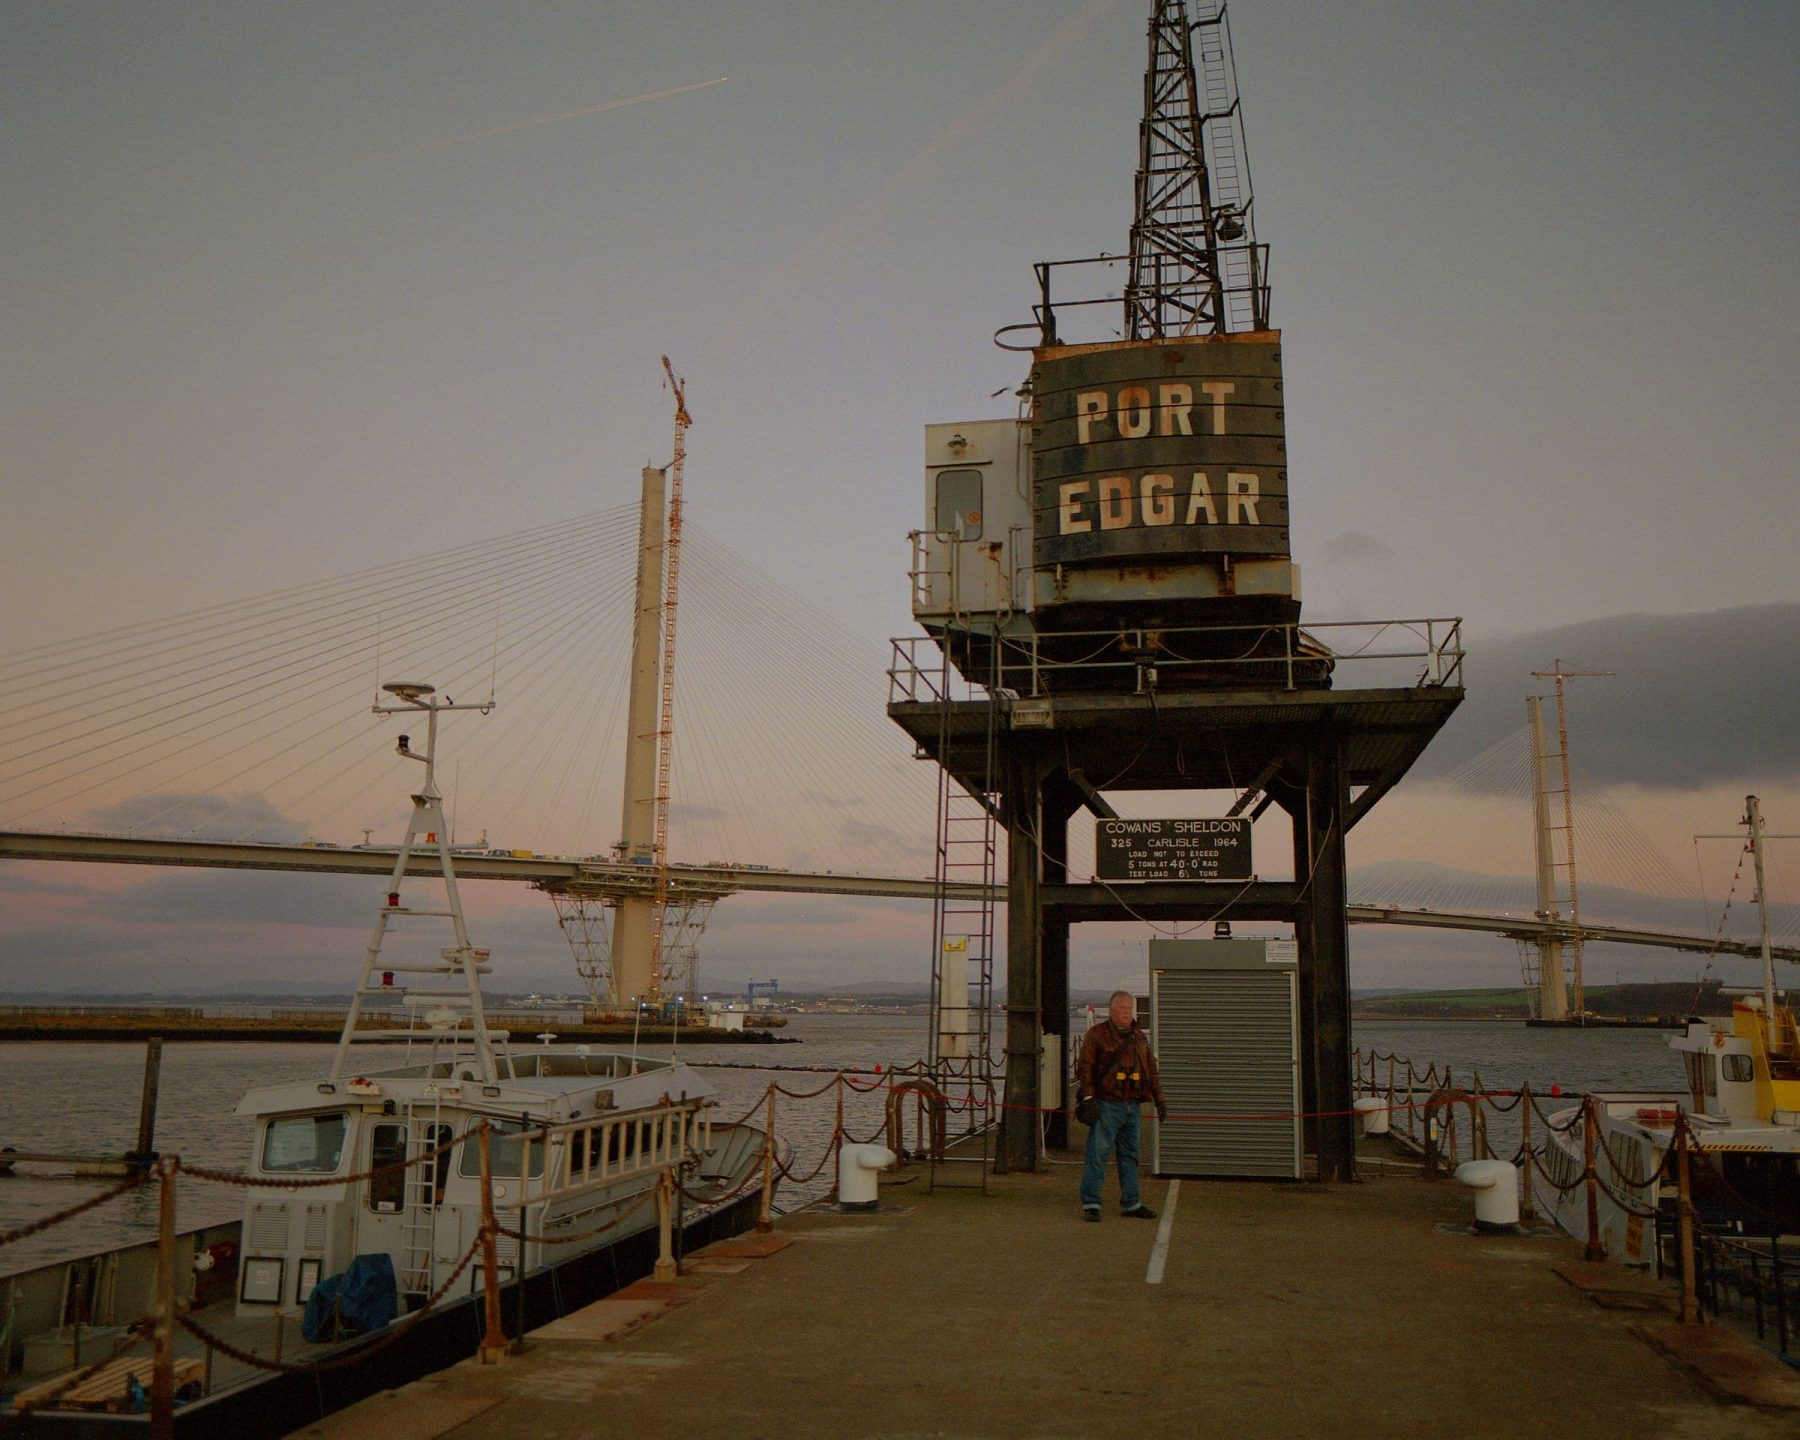 A man stands in front of a large boat crane at Port Edgar harbour during blue hour